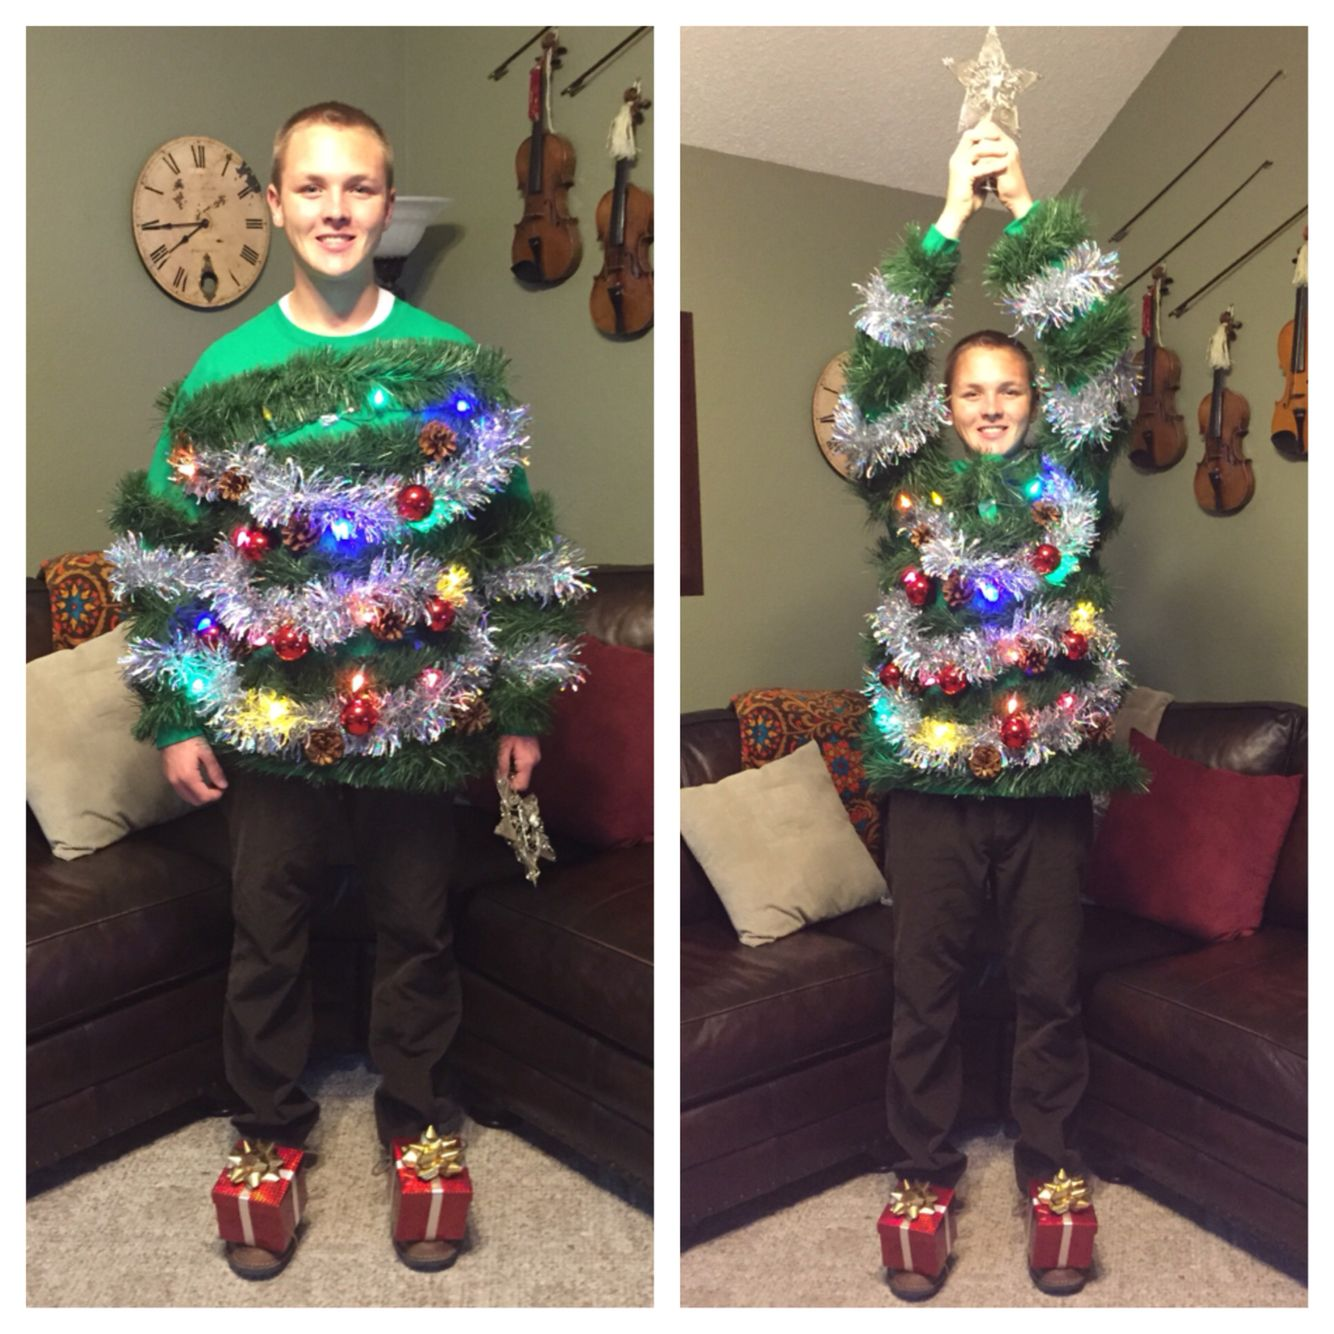 My Very Own Diy Christmas Tree Costume Complete With Presents Under The Tree And Lights Christmas Tree Costume Diy Christmas Tree Tree Costume